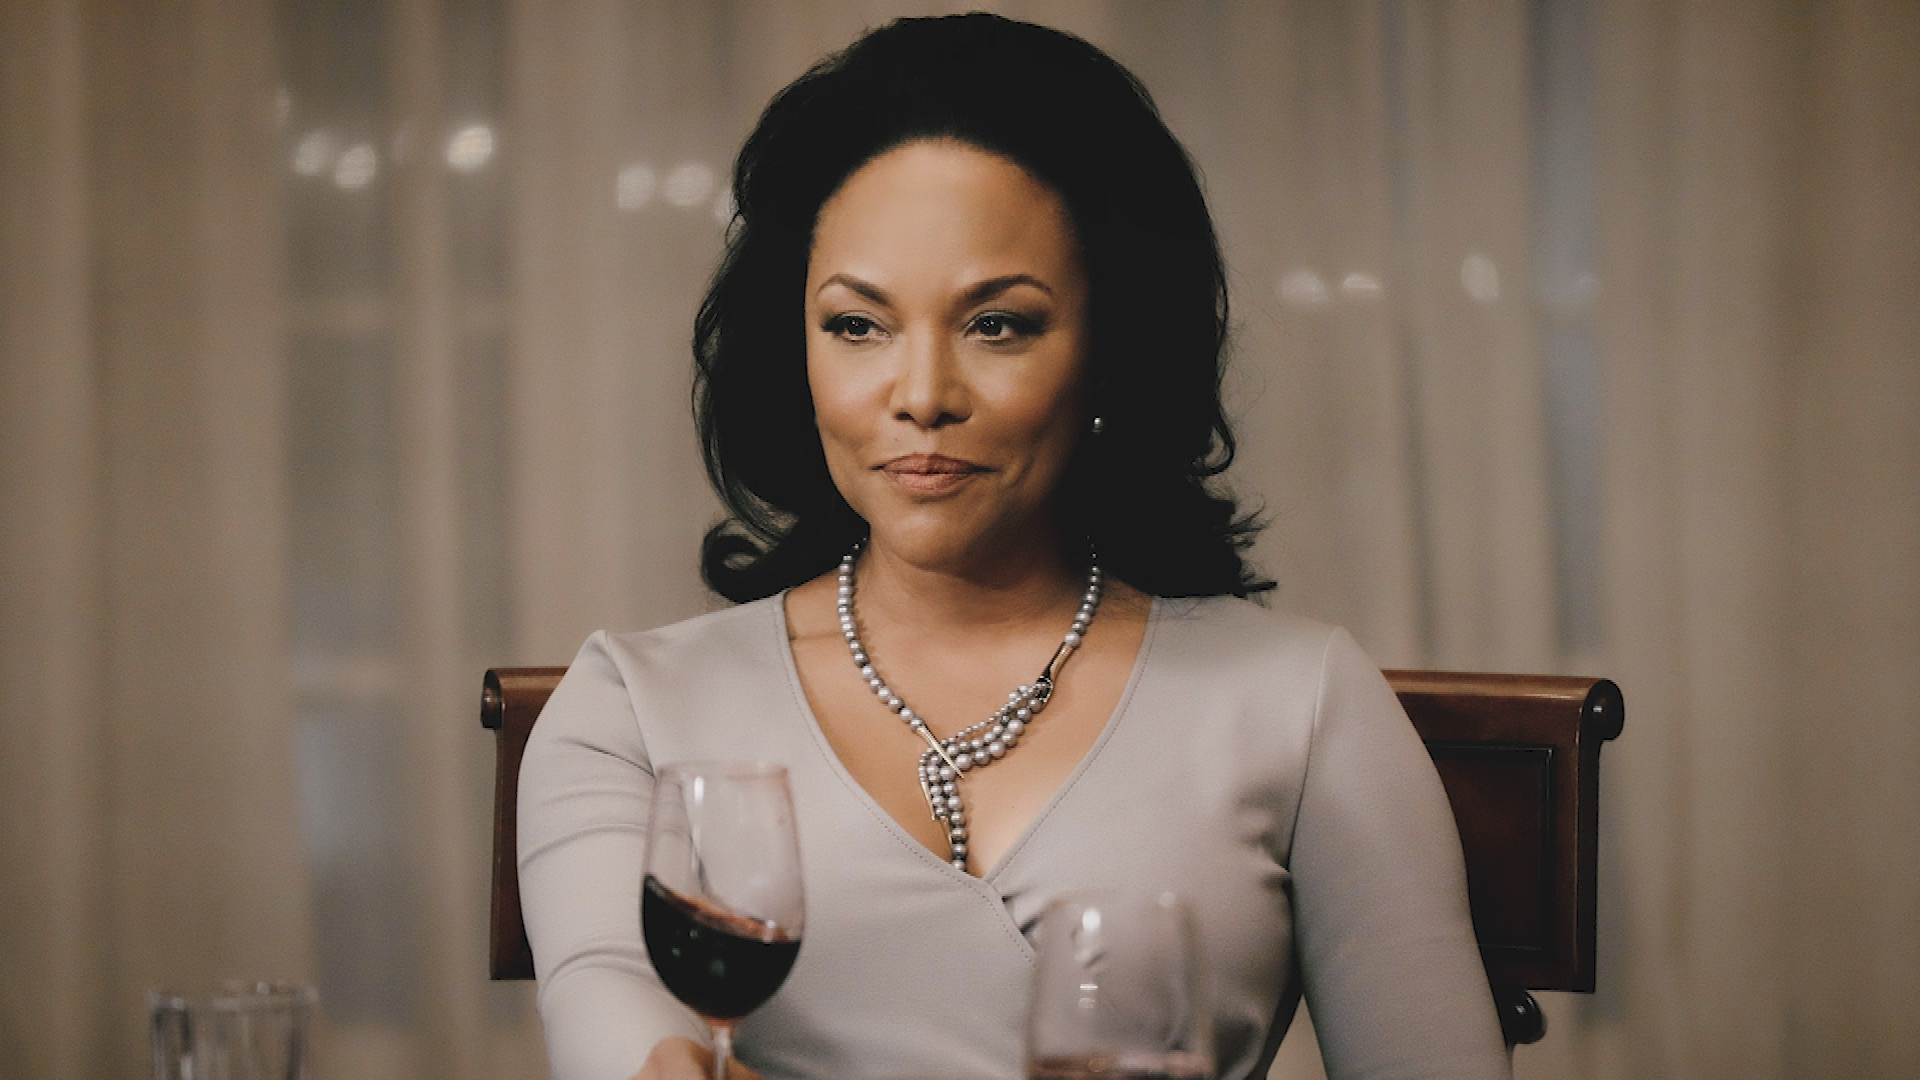 The Iconic Lynn Whitfield Reflects on Her Highly Inspiring Journey to Success on Uncensored